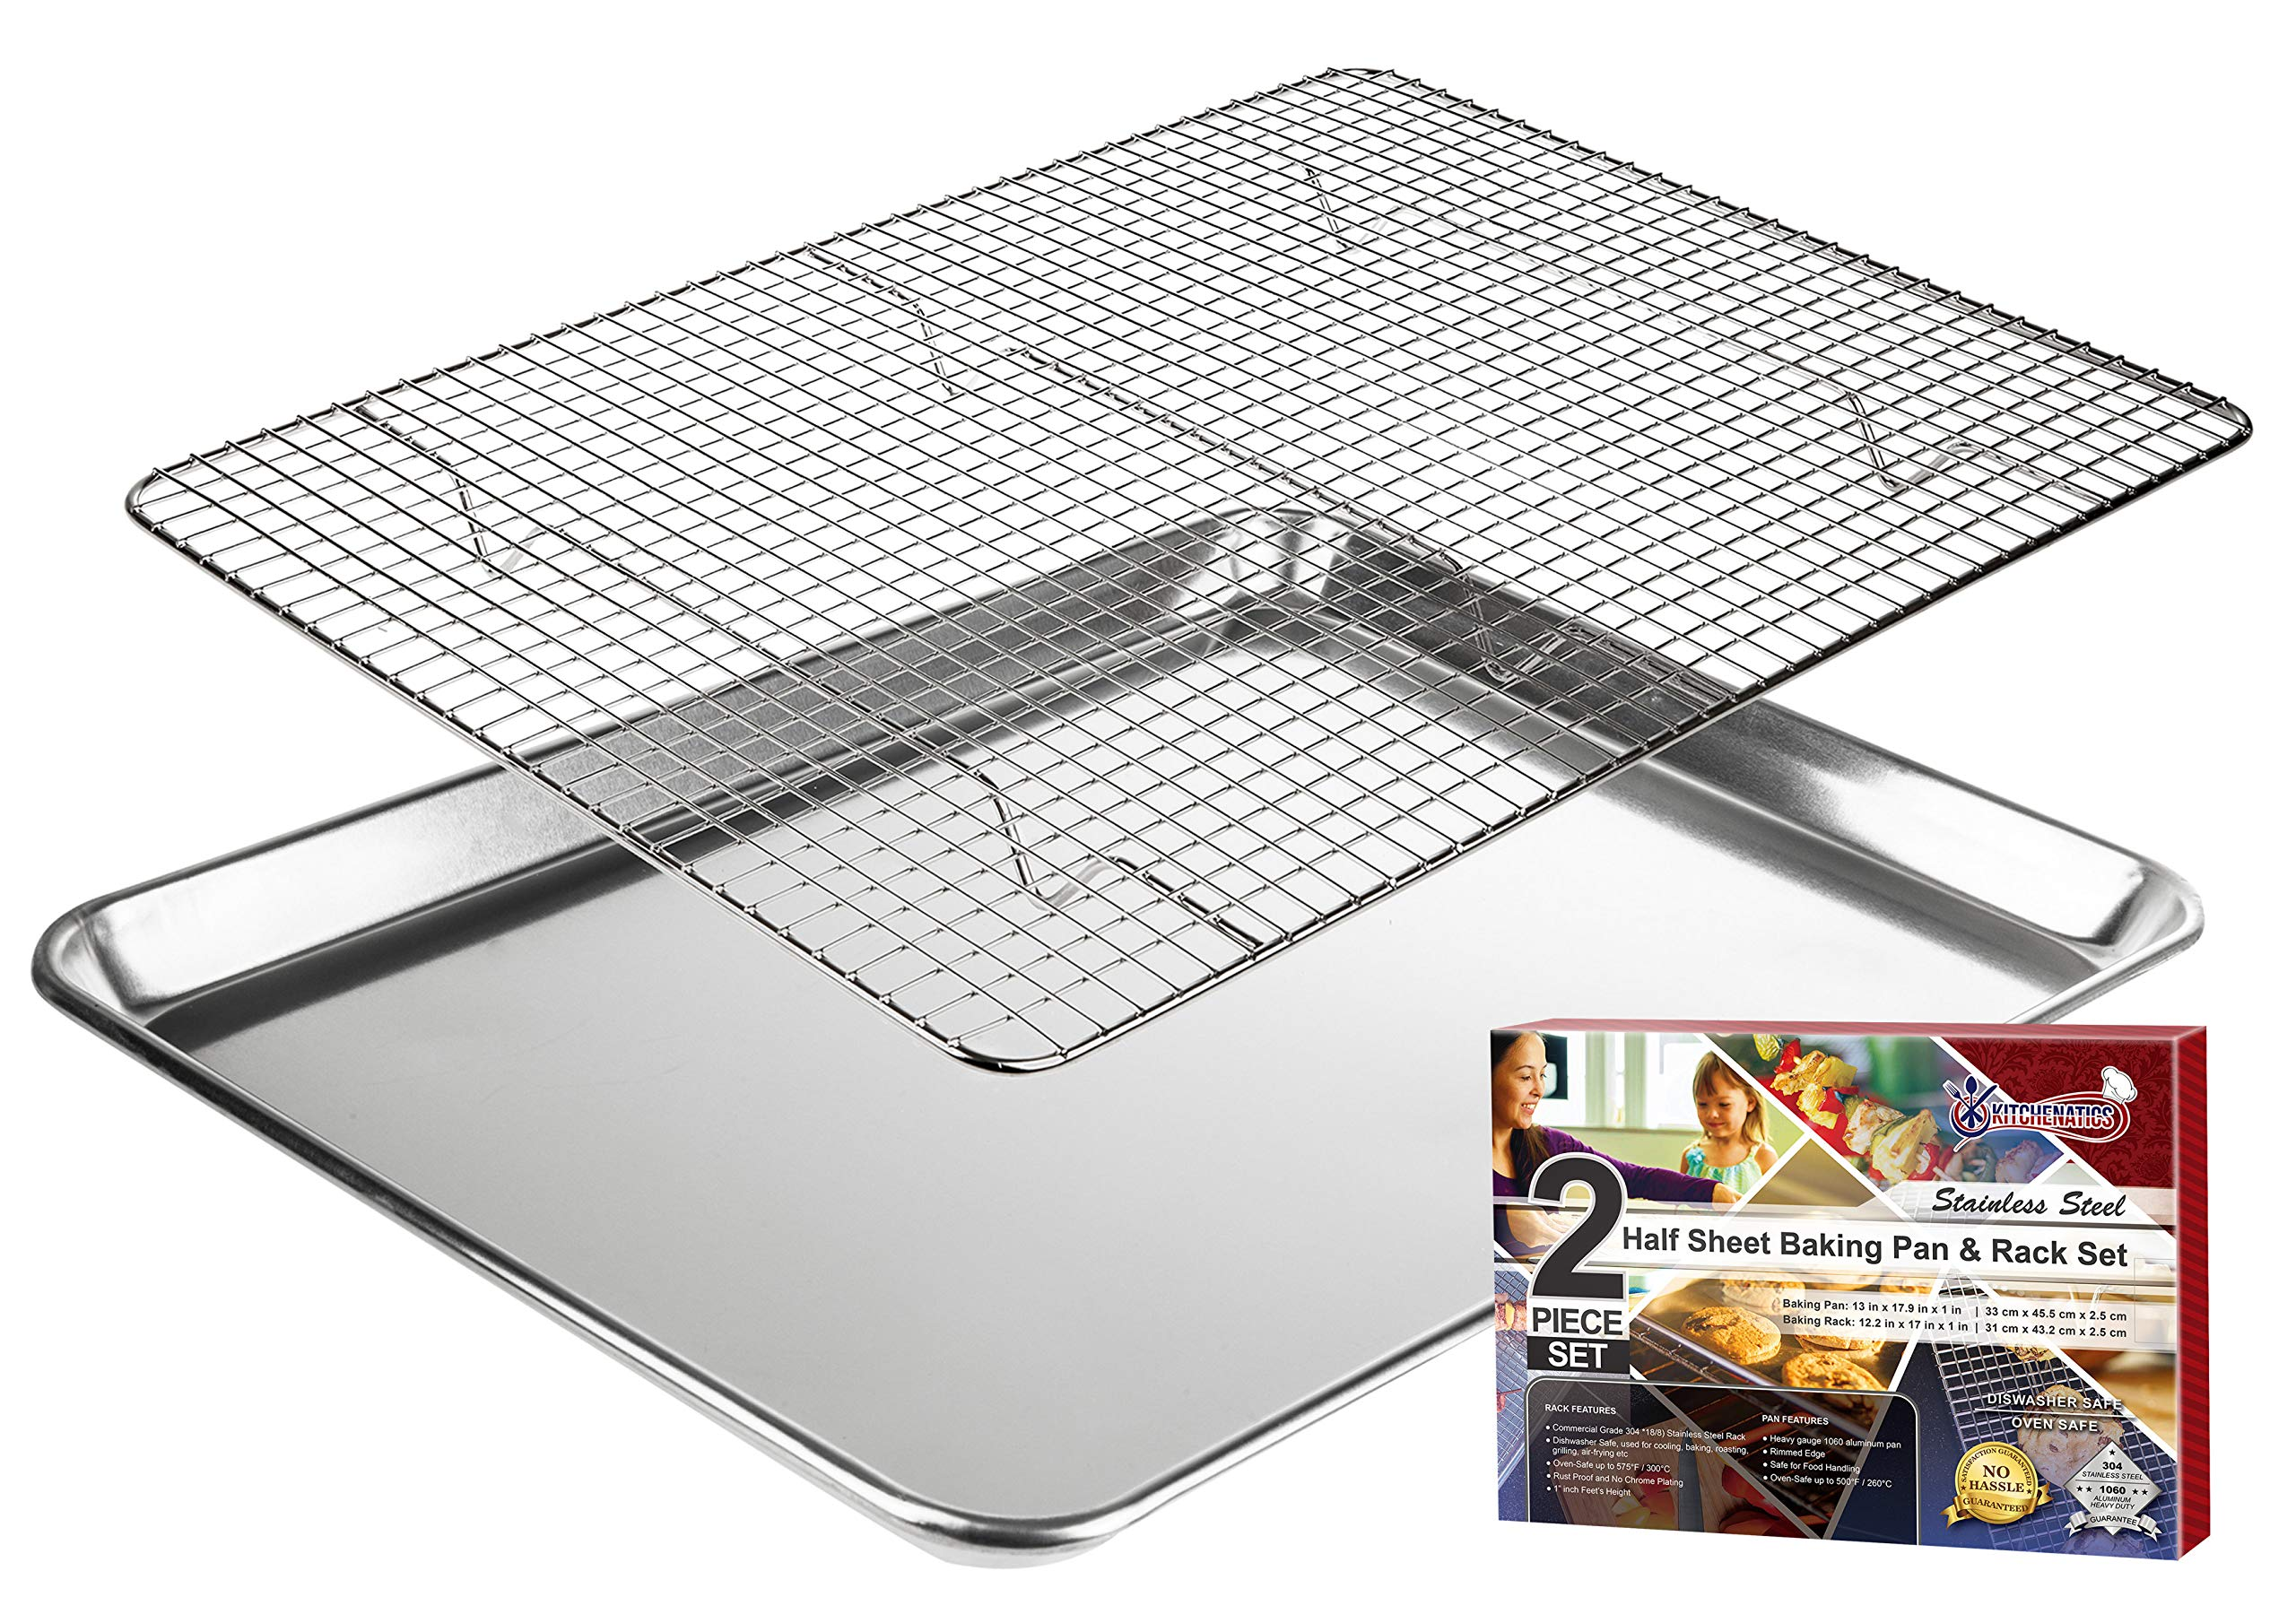 KITCHENATICS Baking Sheet with Cooling Rack: Half Aluminum Cookie Pan Tray with Stainless Steel Wire and Roasting Rack - 13.1'' x 17.9'', Heavy Duty Commercial Quality by KITCHENATICS (Image #1)